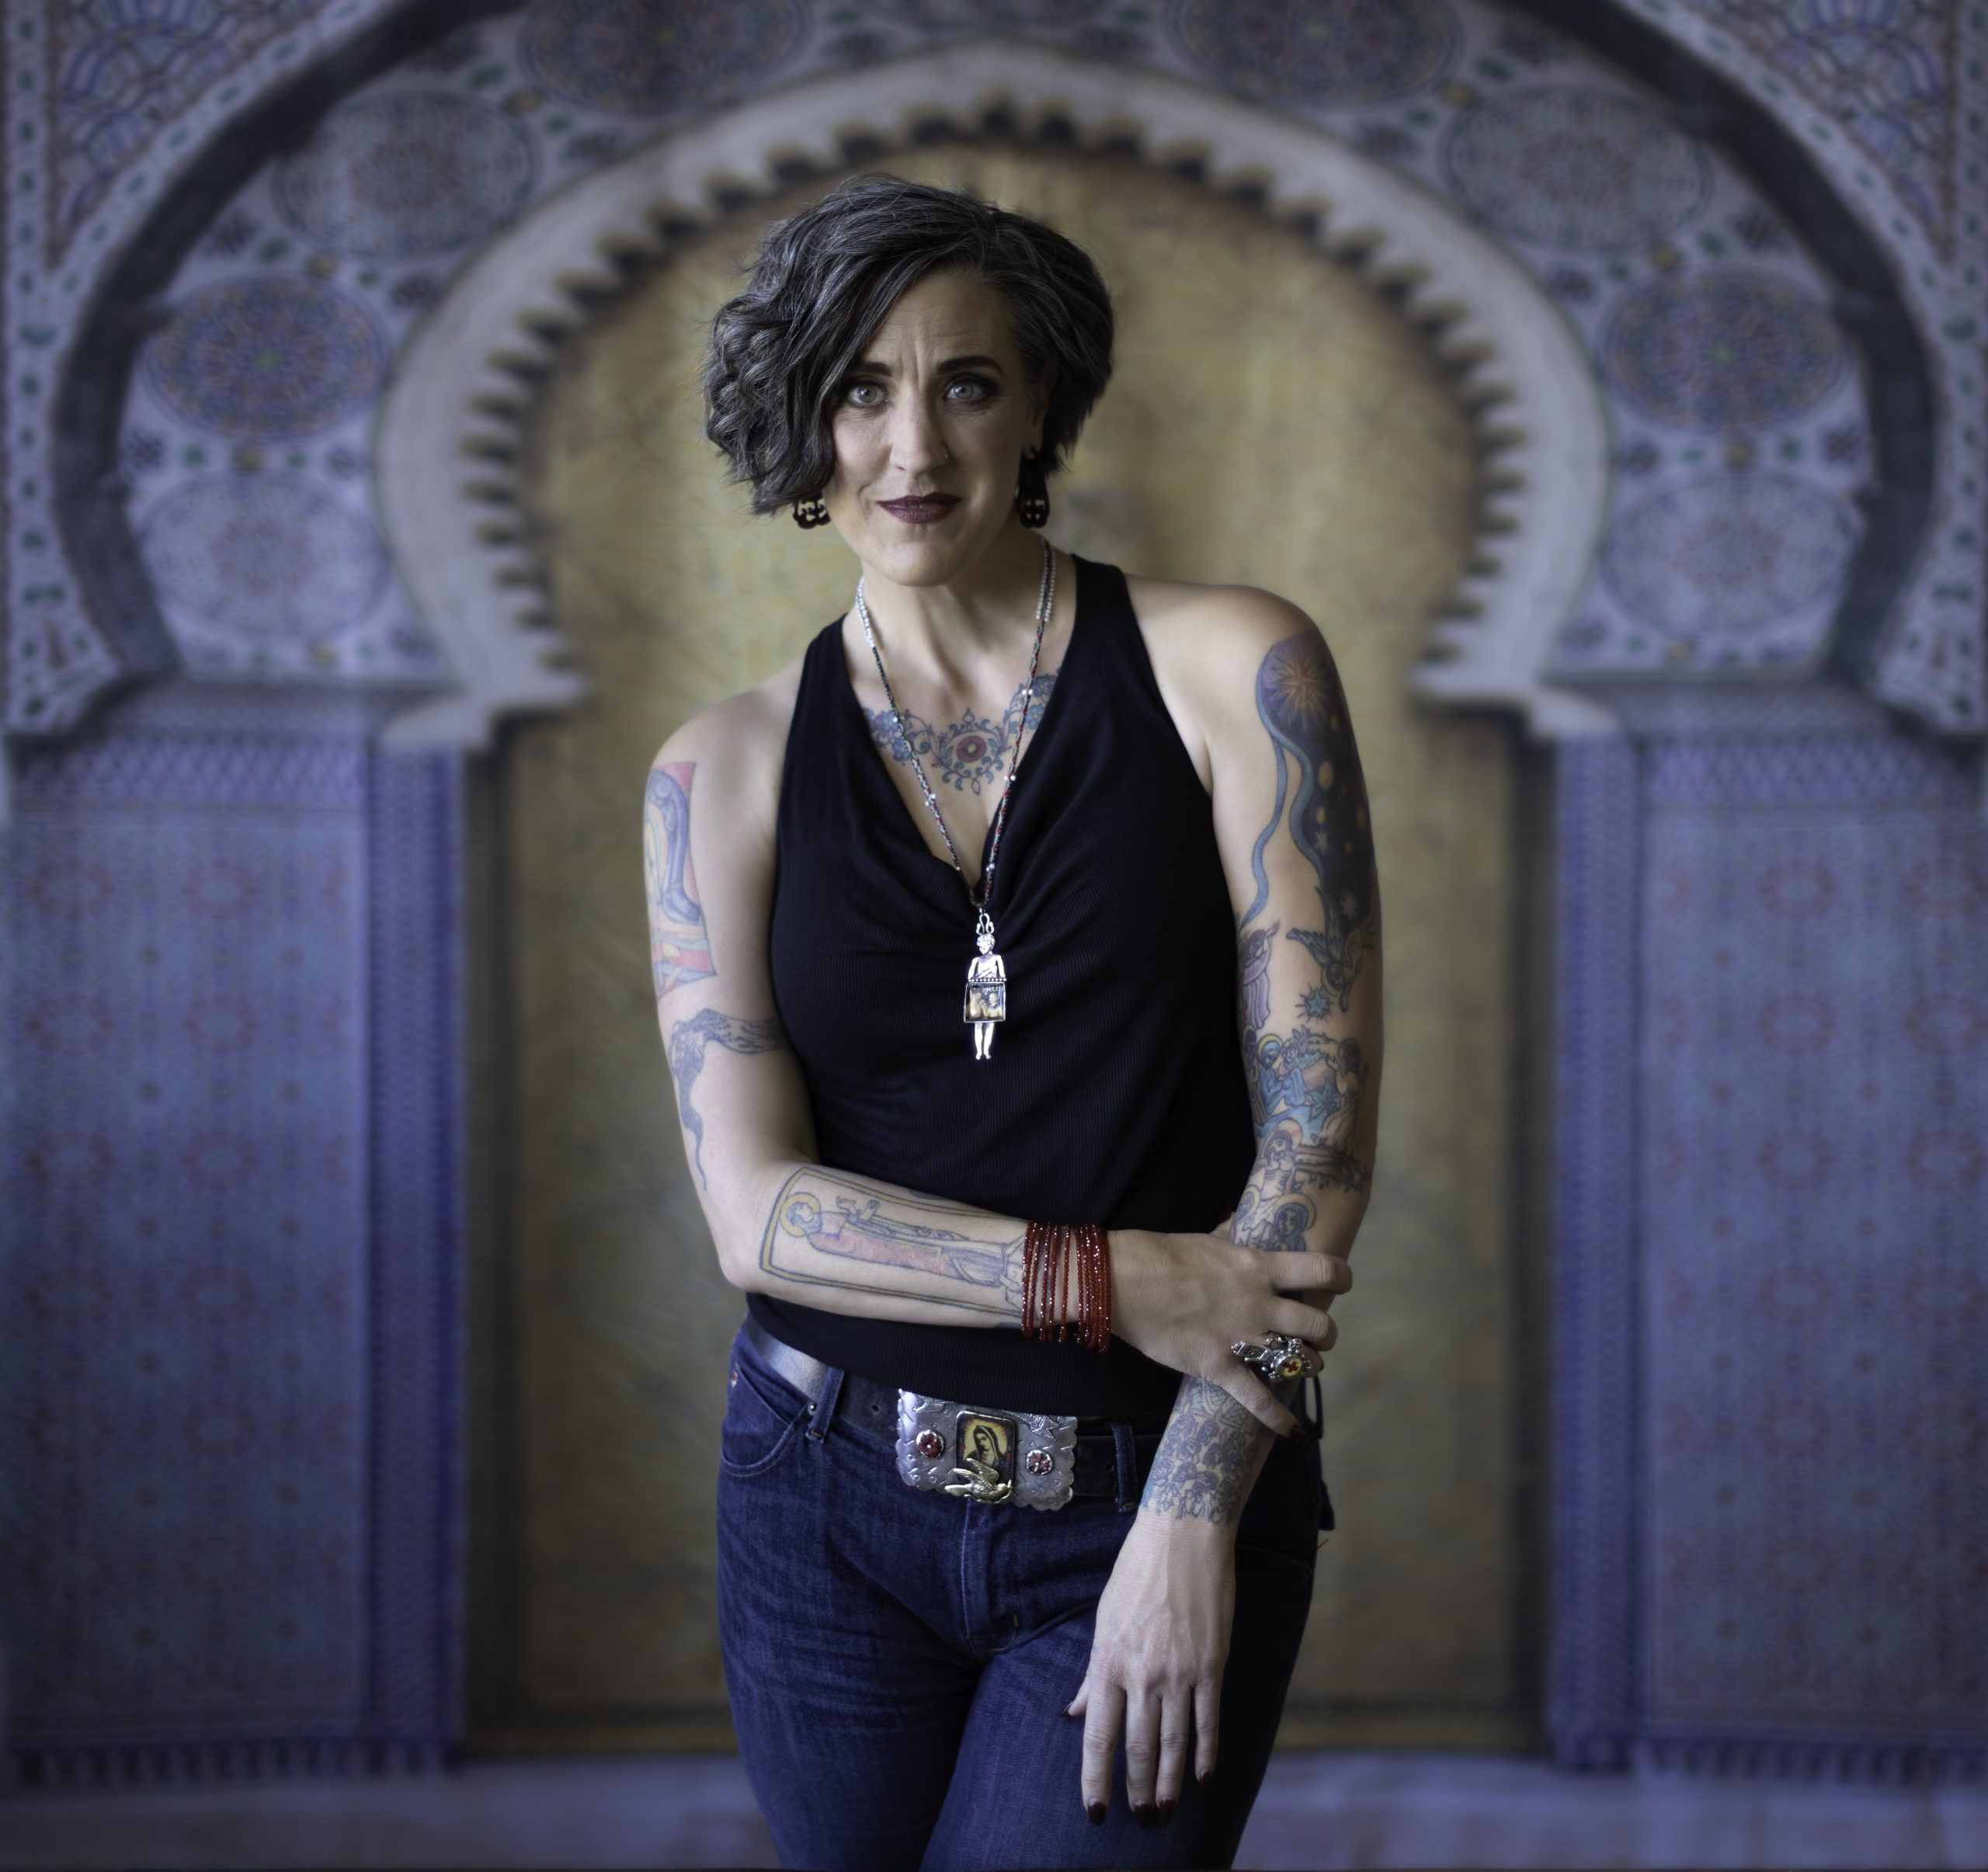 Person with asymmetrical curly bob hairstyle wearing a black sleeveless v-neck shirt, tattooed arms, one crossing her body and holding the other, in blue jeans with a belt that has a large silver belt buckle. She's wearing a silver necklace and standing in front of a gold and stone Moorish arch.